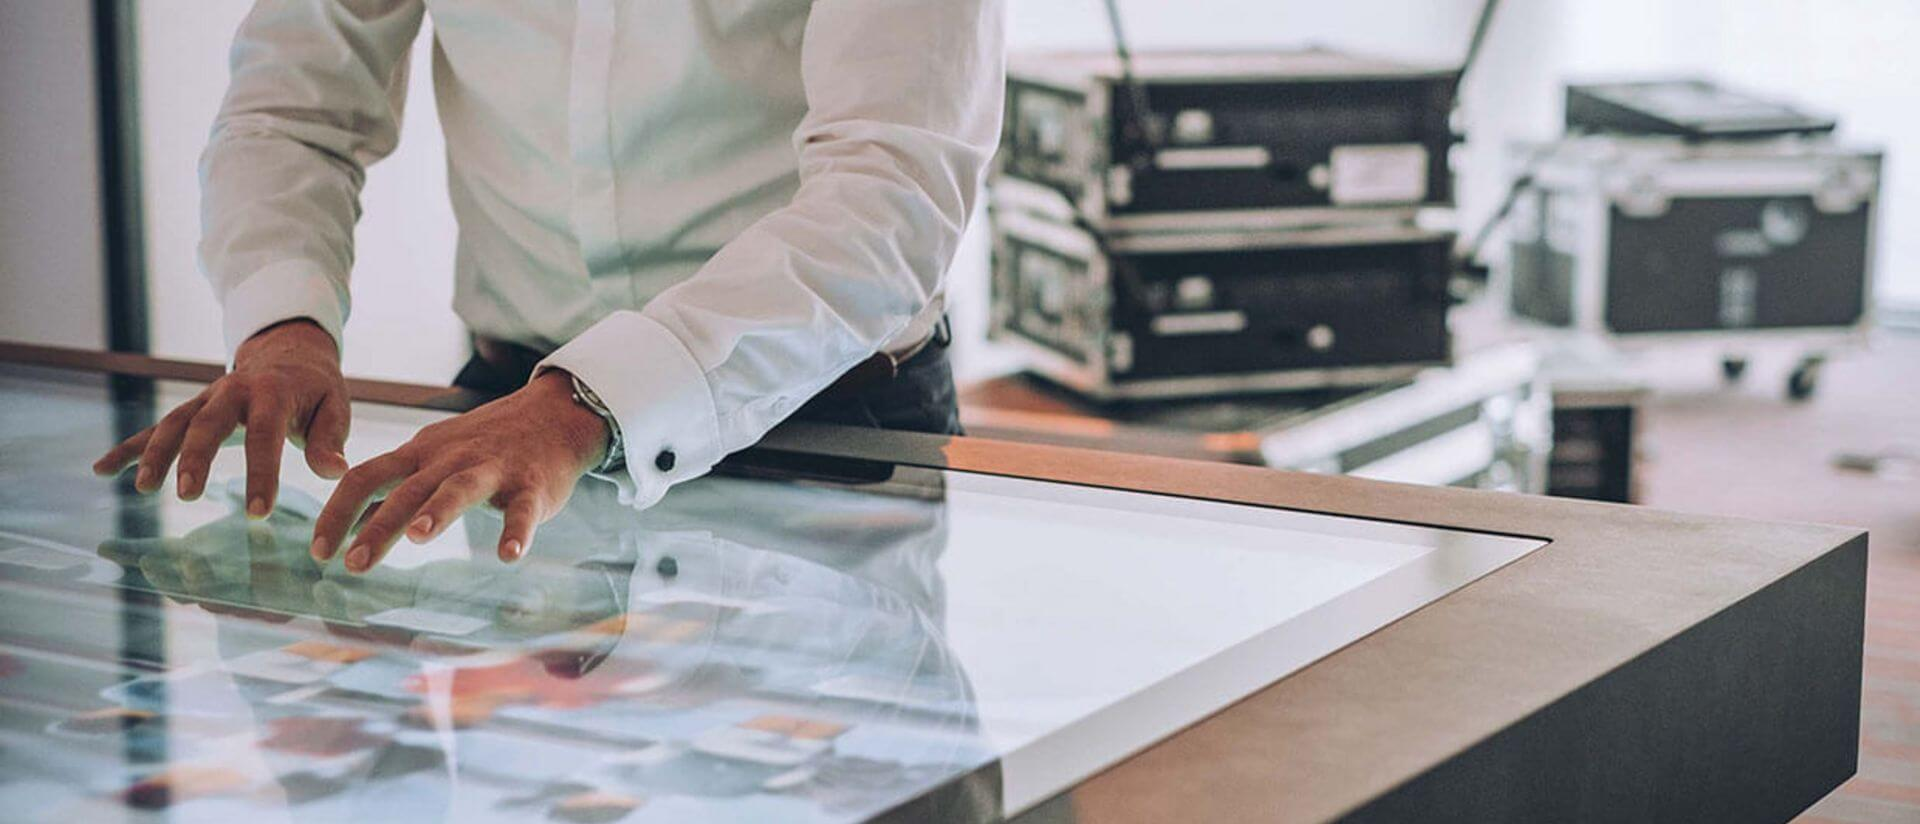 digital event area with man working on a touch screen table